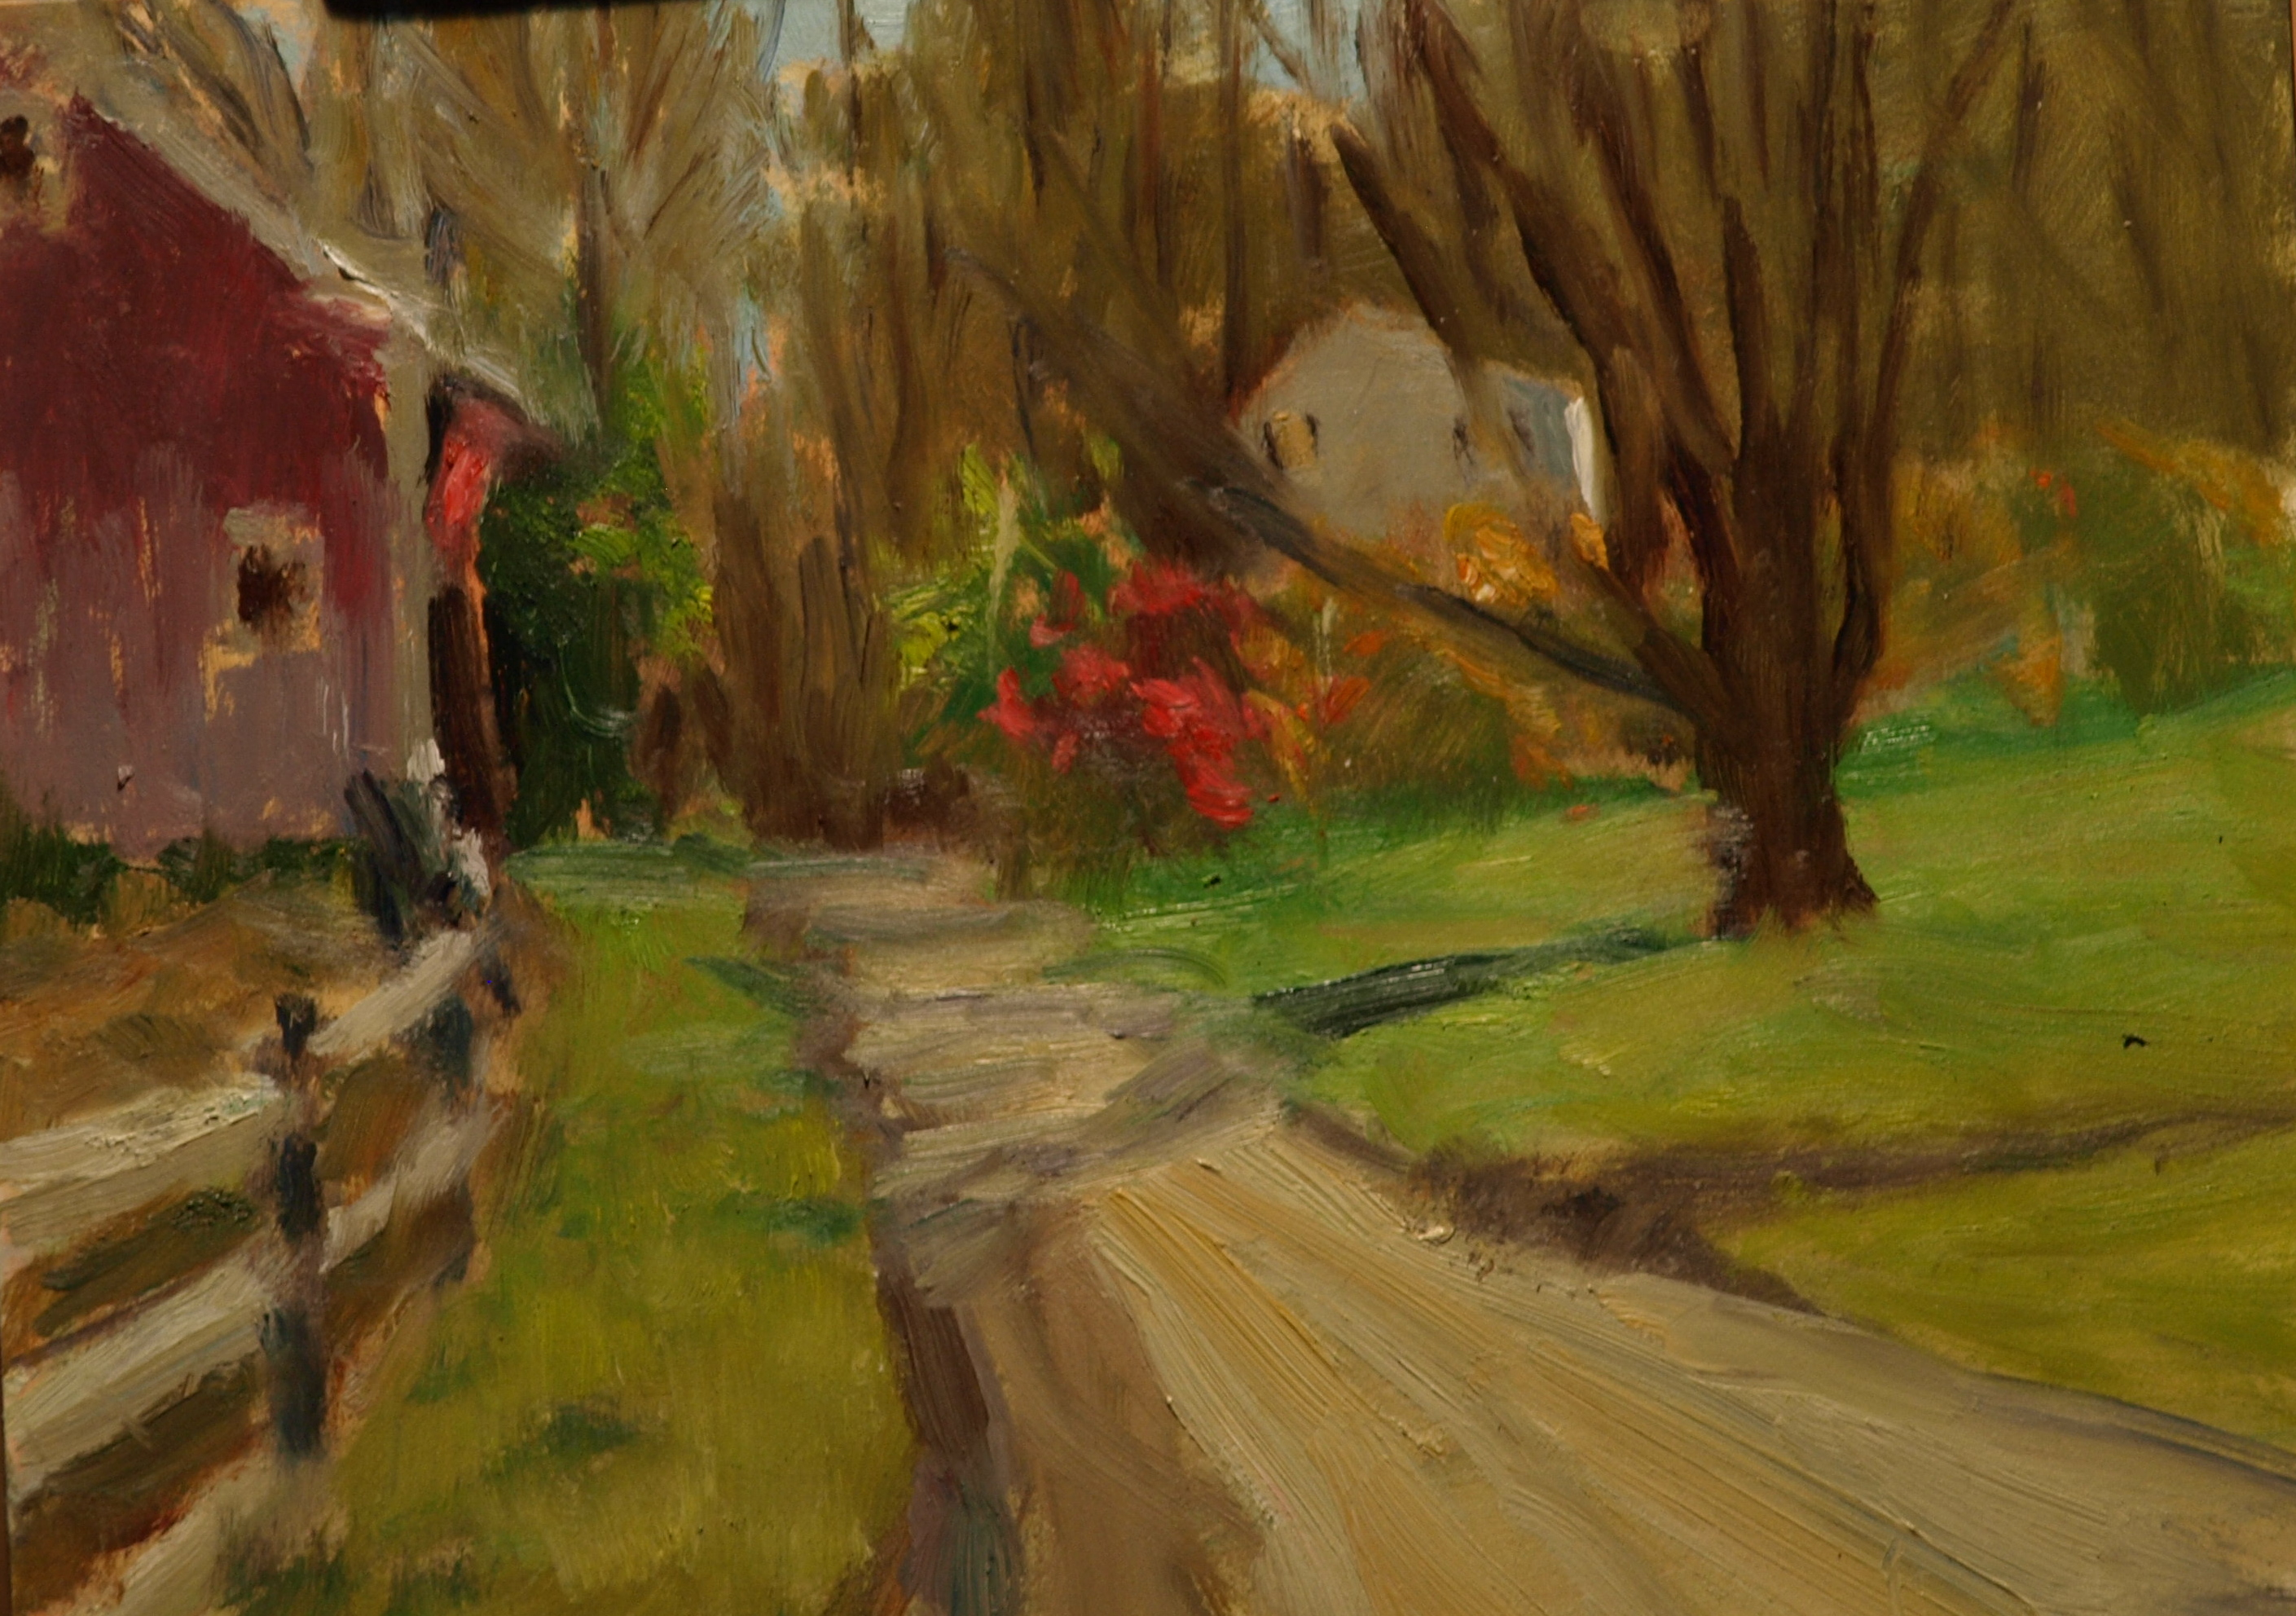 Newton's Autumn, Oil on Canvas on Panel, 9 x 12 Inches, by Richard Stalter, $225